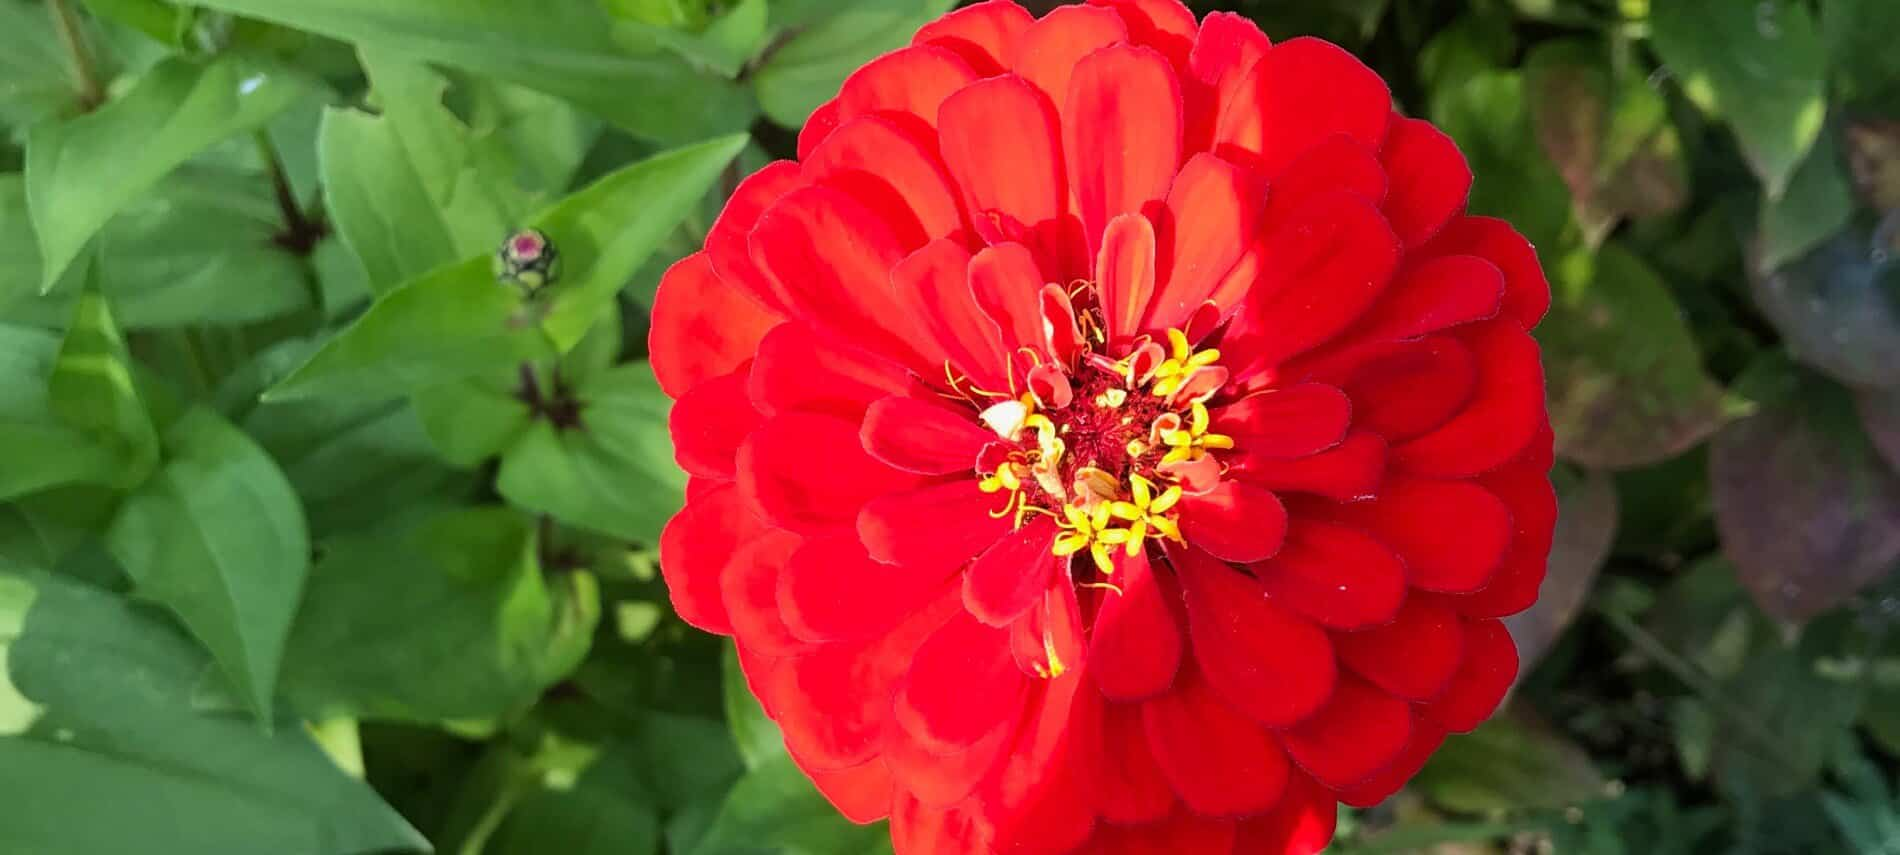 One large red flower with many small petals and yellow center amidst green leaves